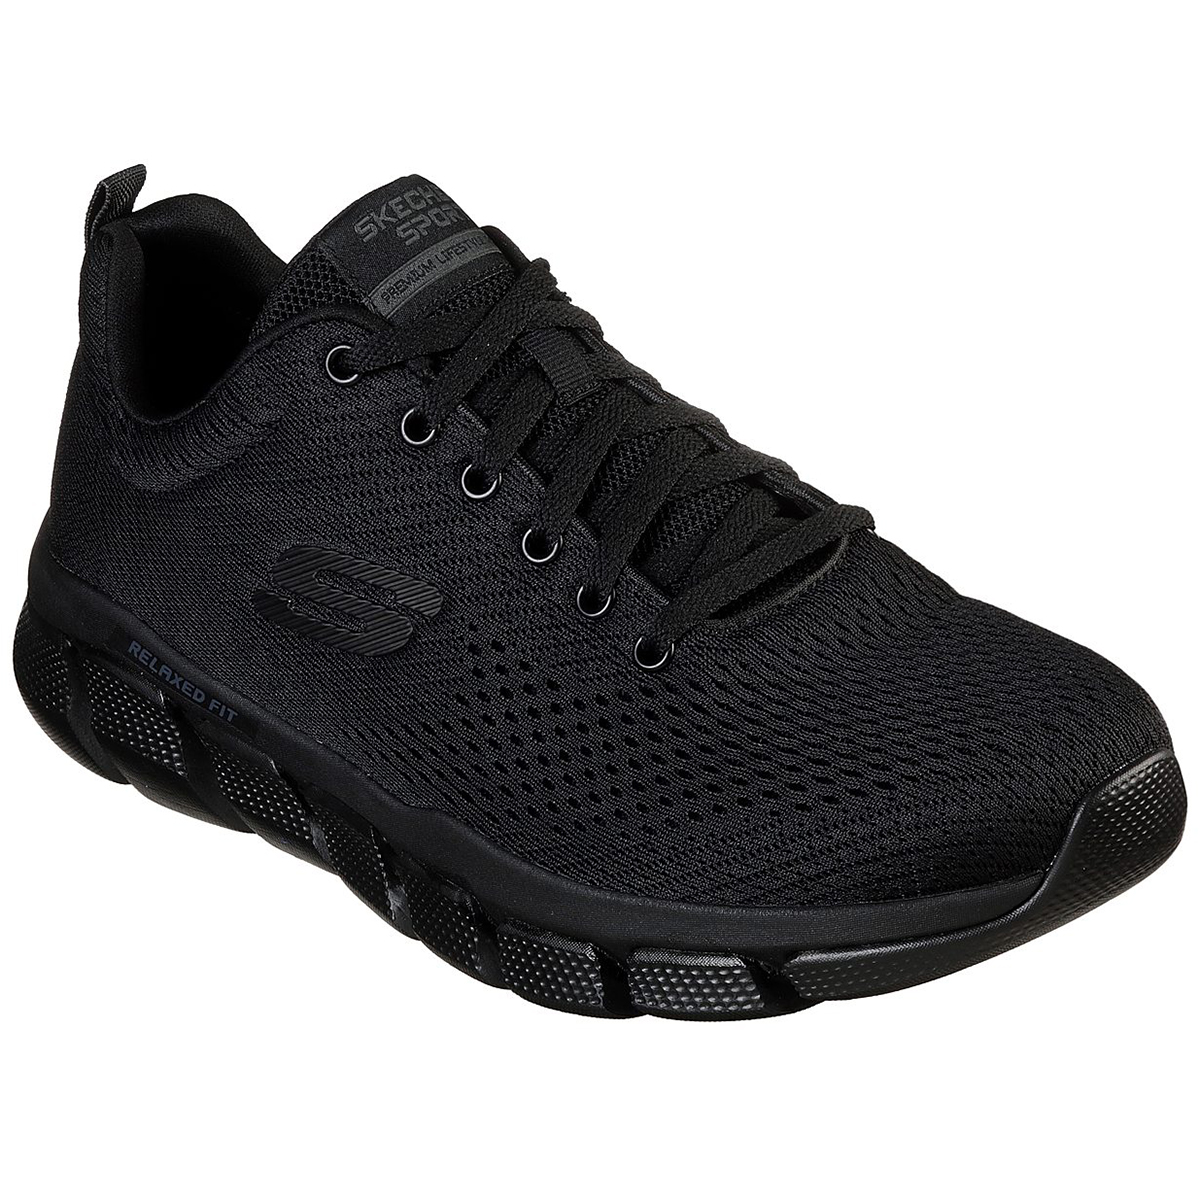 Skechers Men's Relaxed Fit Skech-Flex 3.0 Verko Lace Up Sneakers, Wide - Black, 10